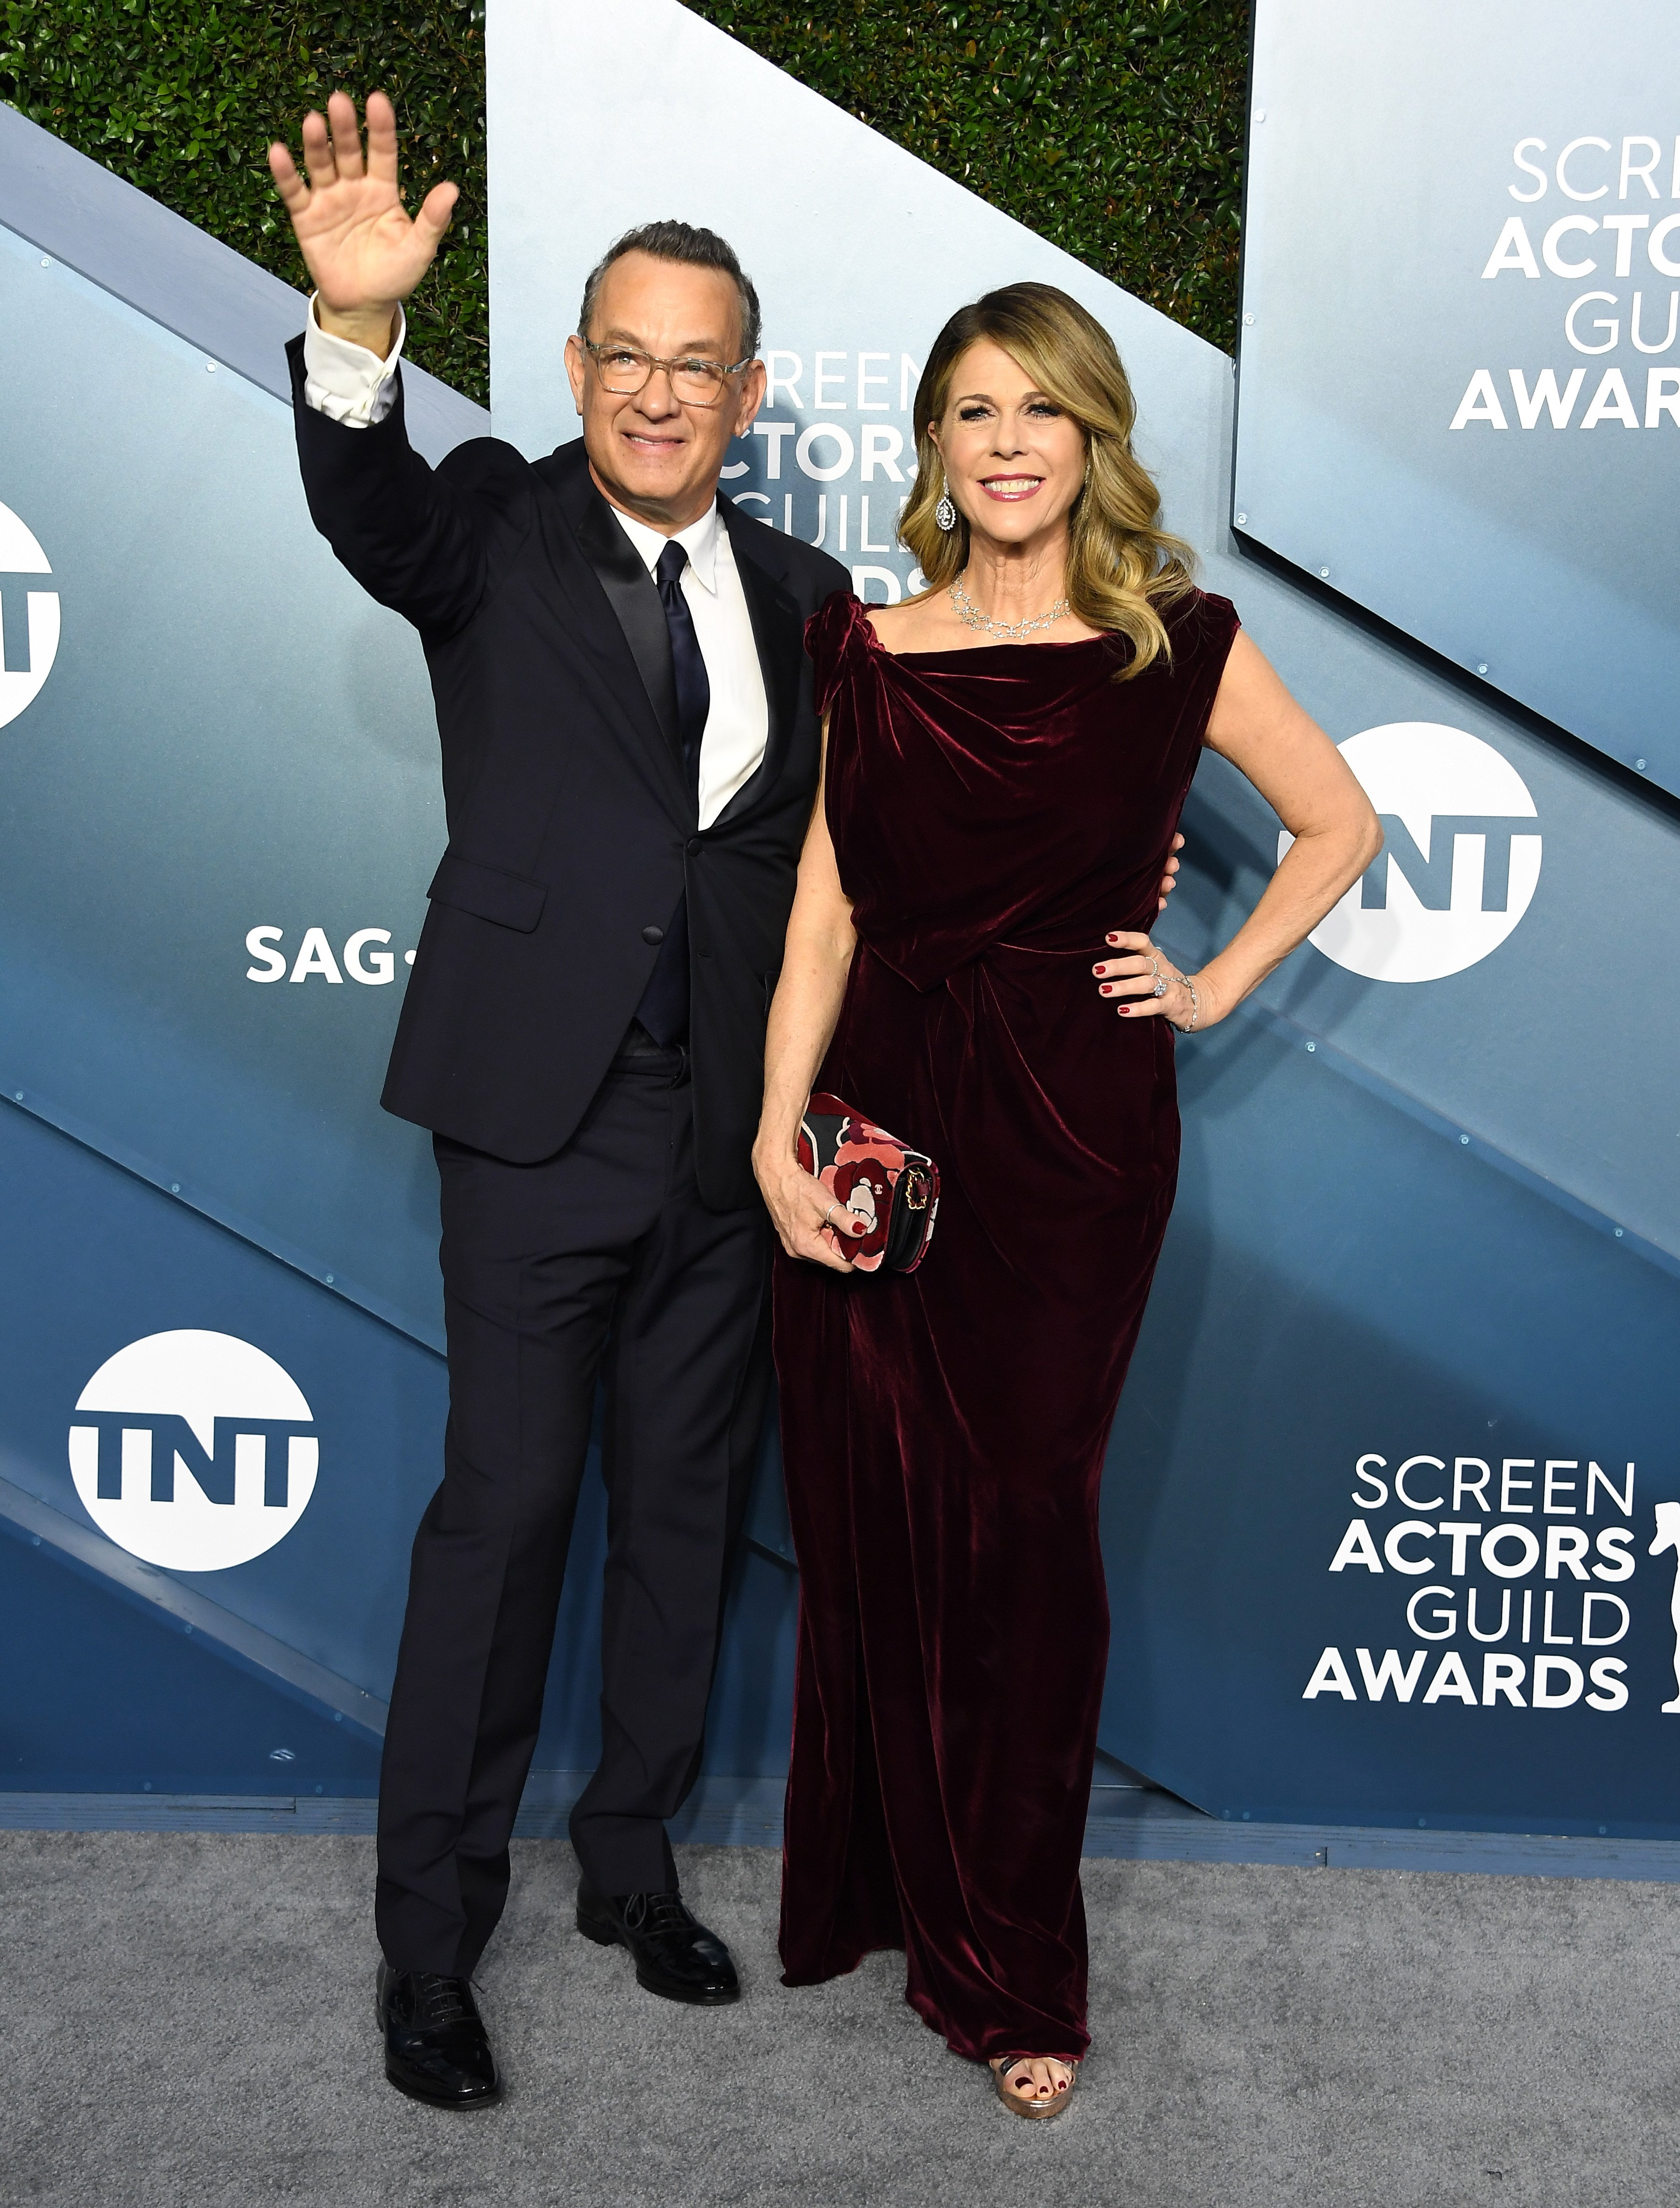 Tom Hanks and Rita Wilson arrives at the 26th Annual Screen ActorsGuild Awards on January 19, 2020, in Los Angeles, California. | Source: Getty Images.